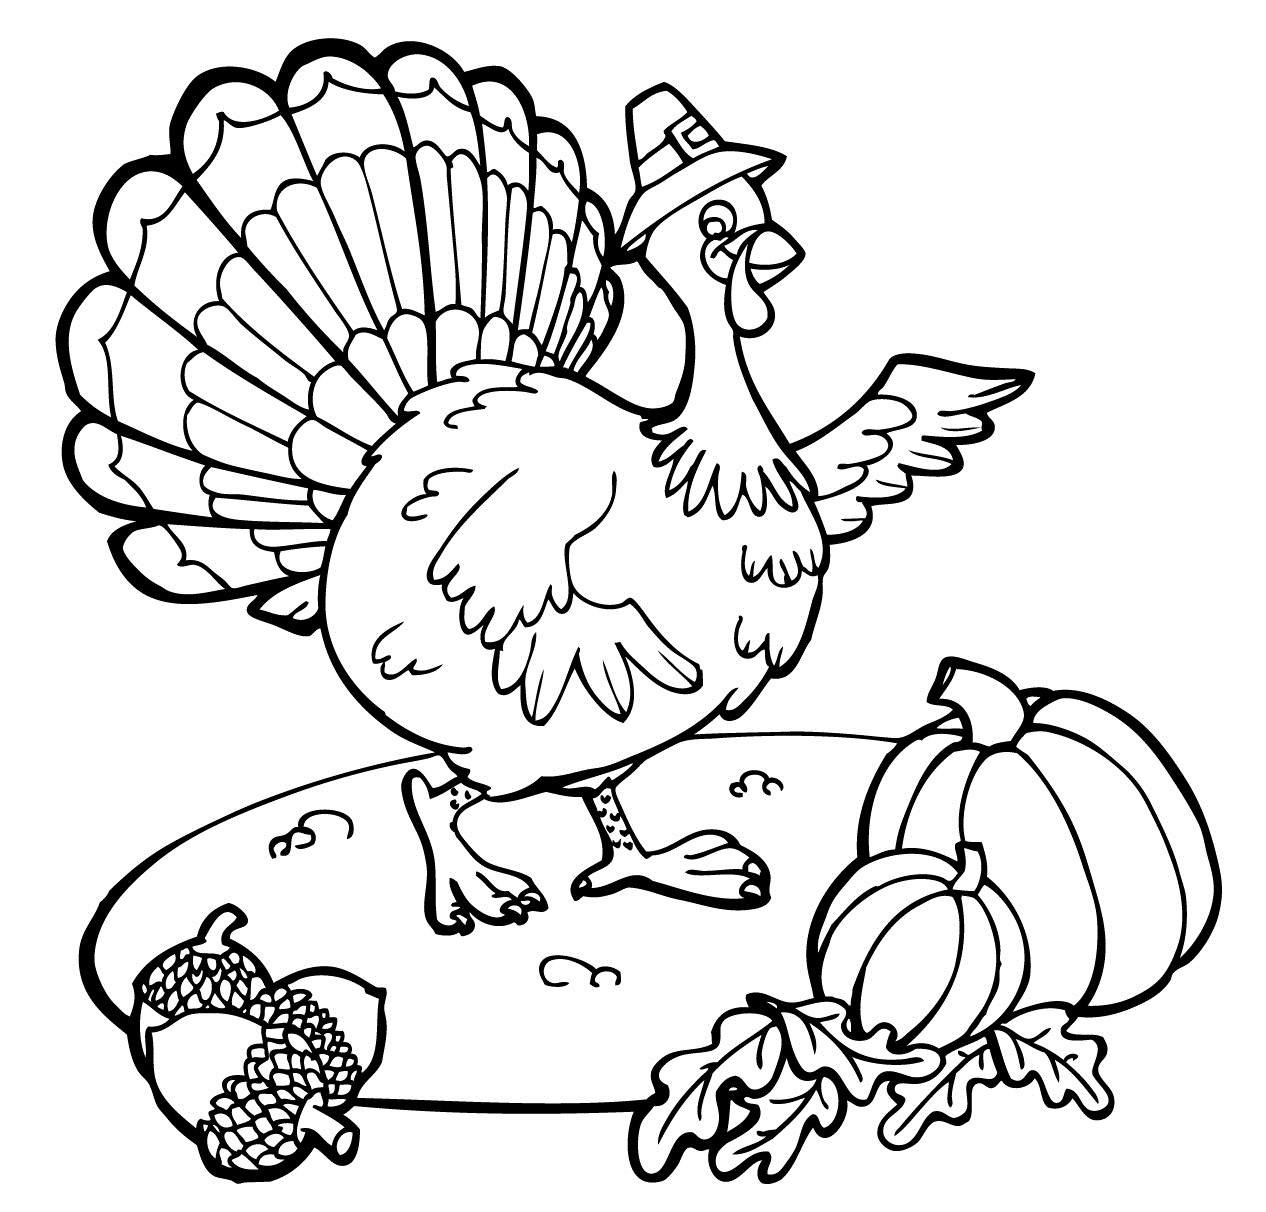 pilgram coloring pages - photo#14